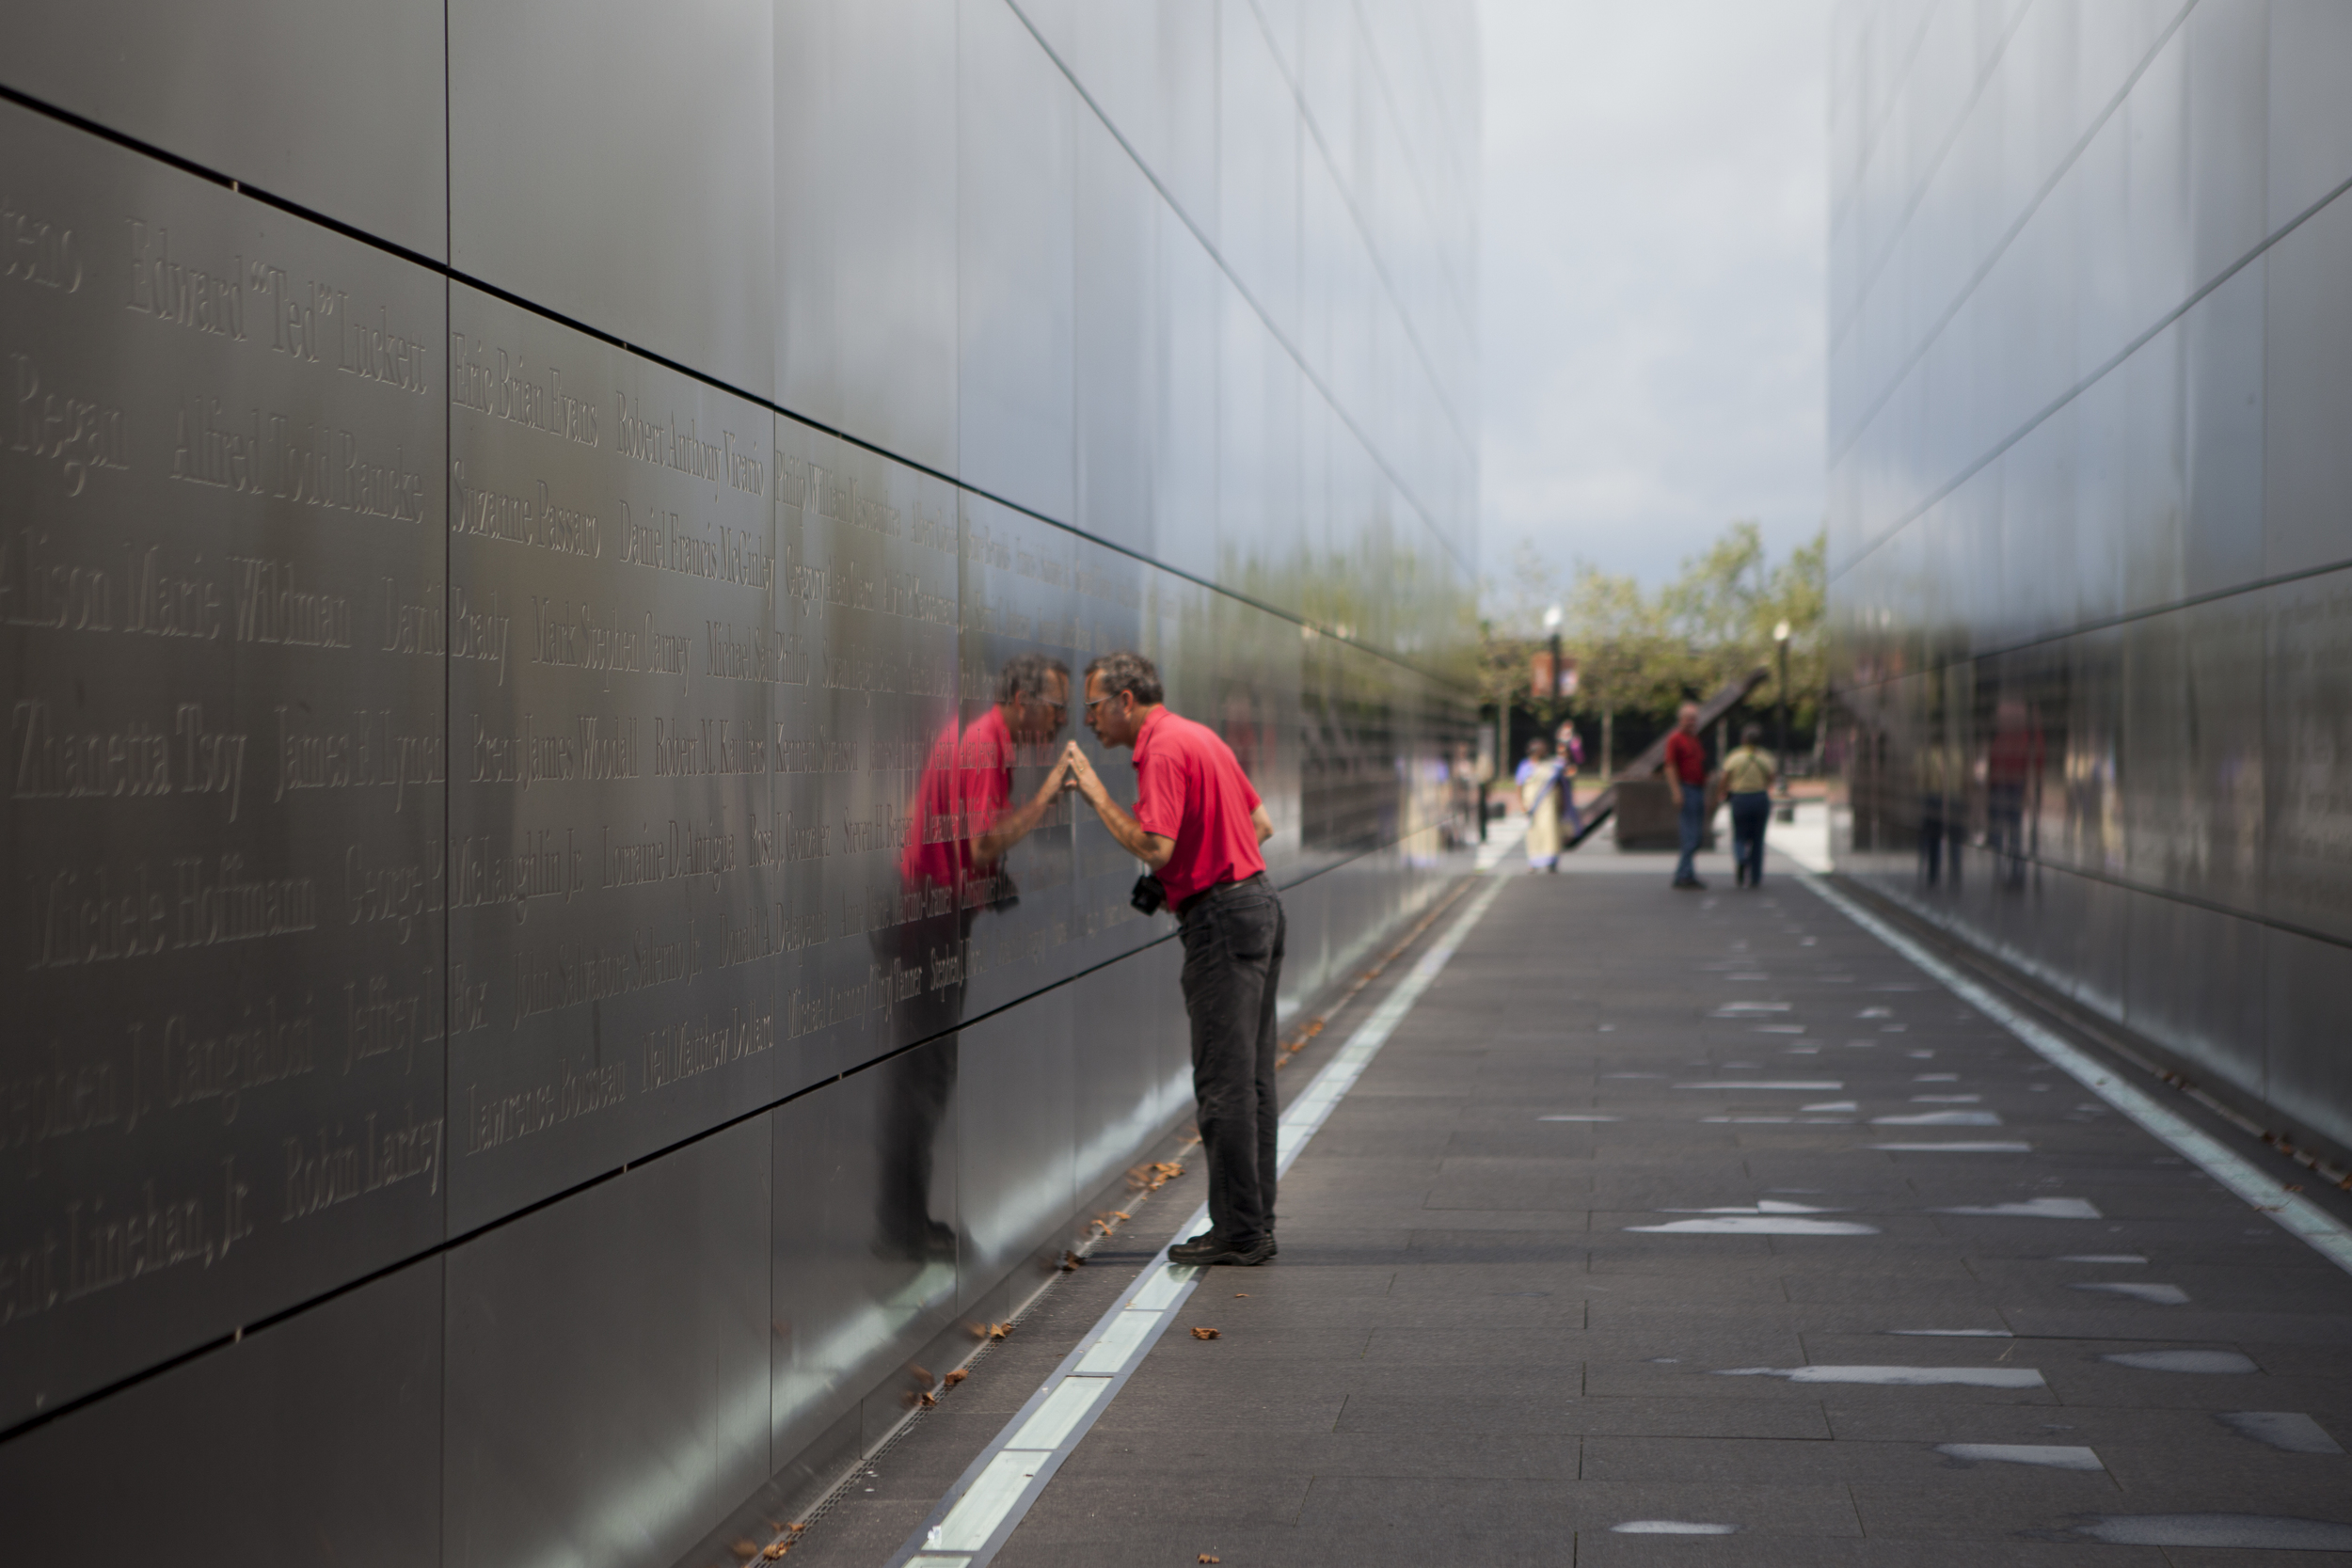 Ray Hoyt, from Mississippi, touches a name on the memorial. New Jersey's September 11th memorial, titled Empty Sky, is located in Liberty State Park in Jersey City.